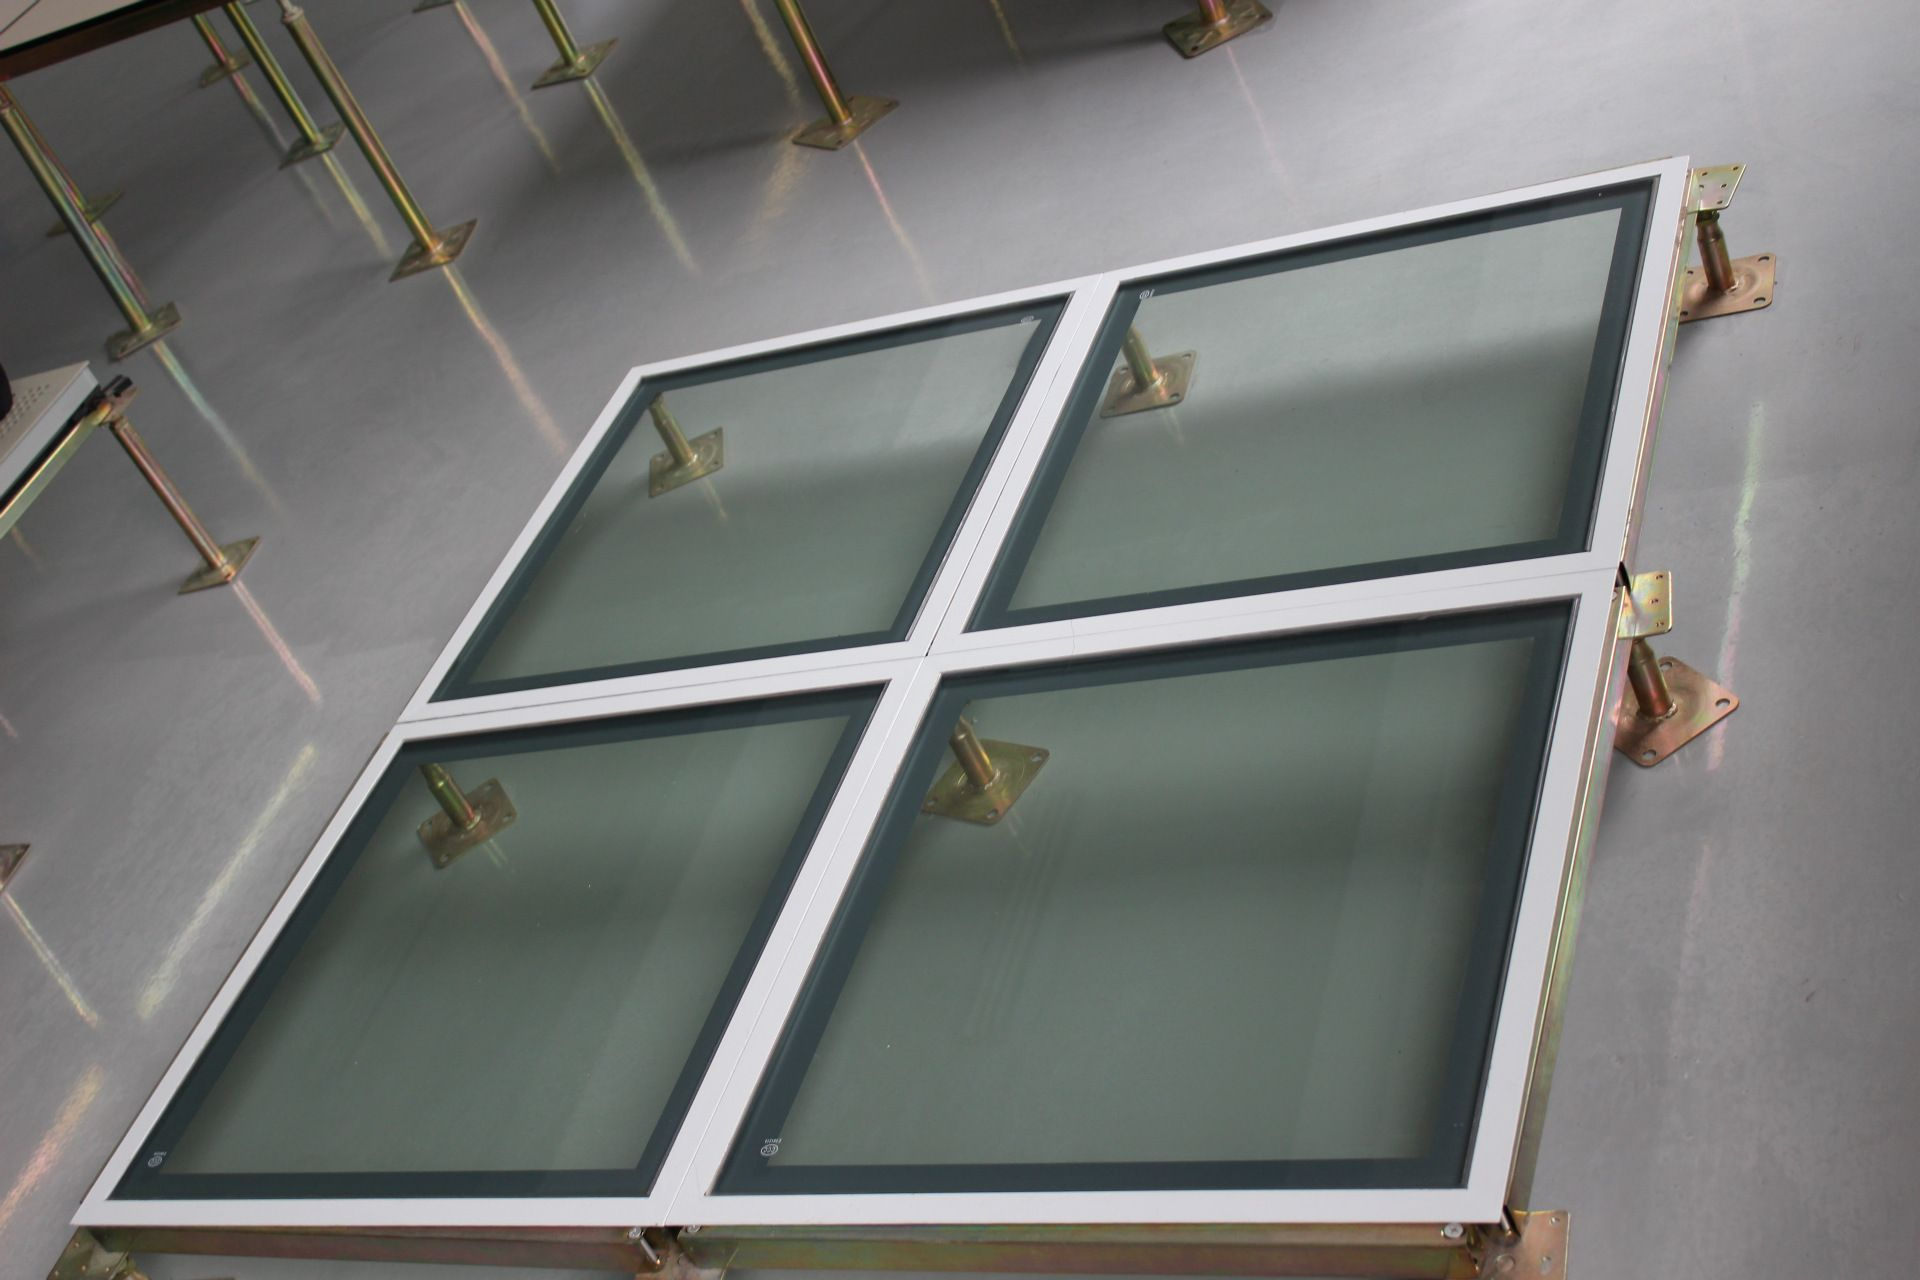 Glass Access Floor Panels | Huiya Raised Floor System | Flooring, Paneling,  Glass panels